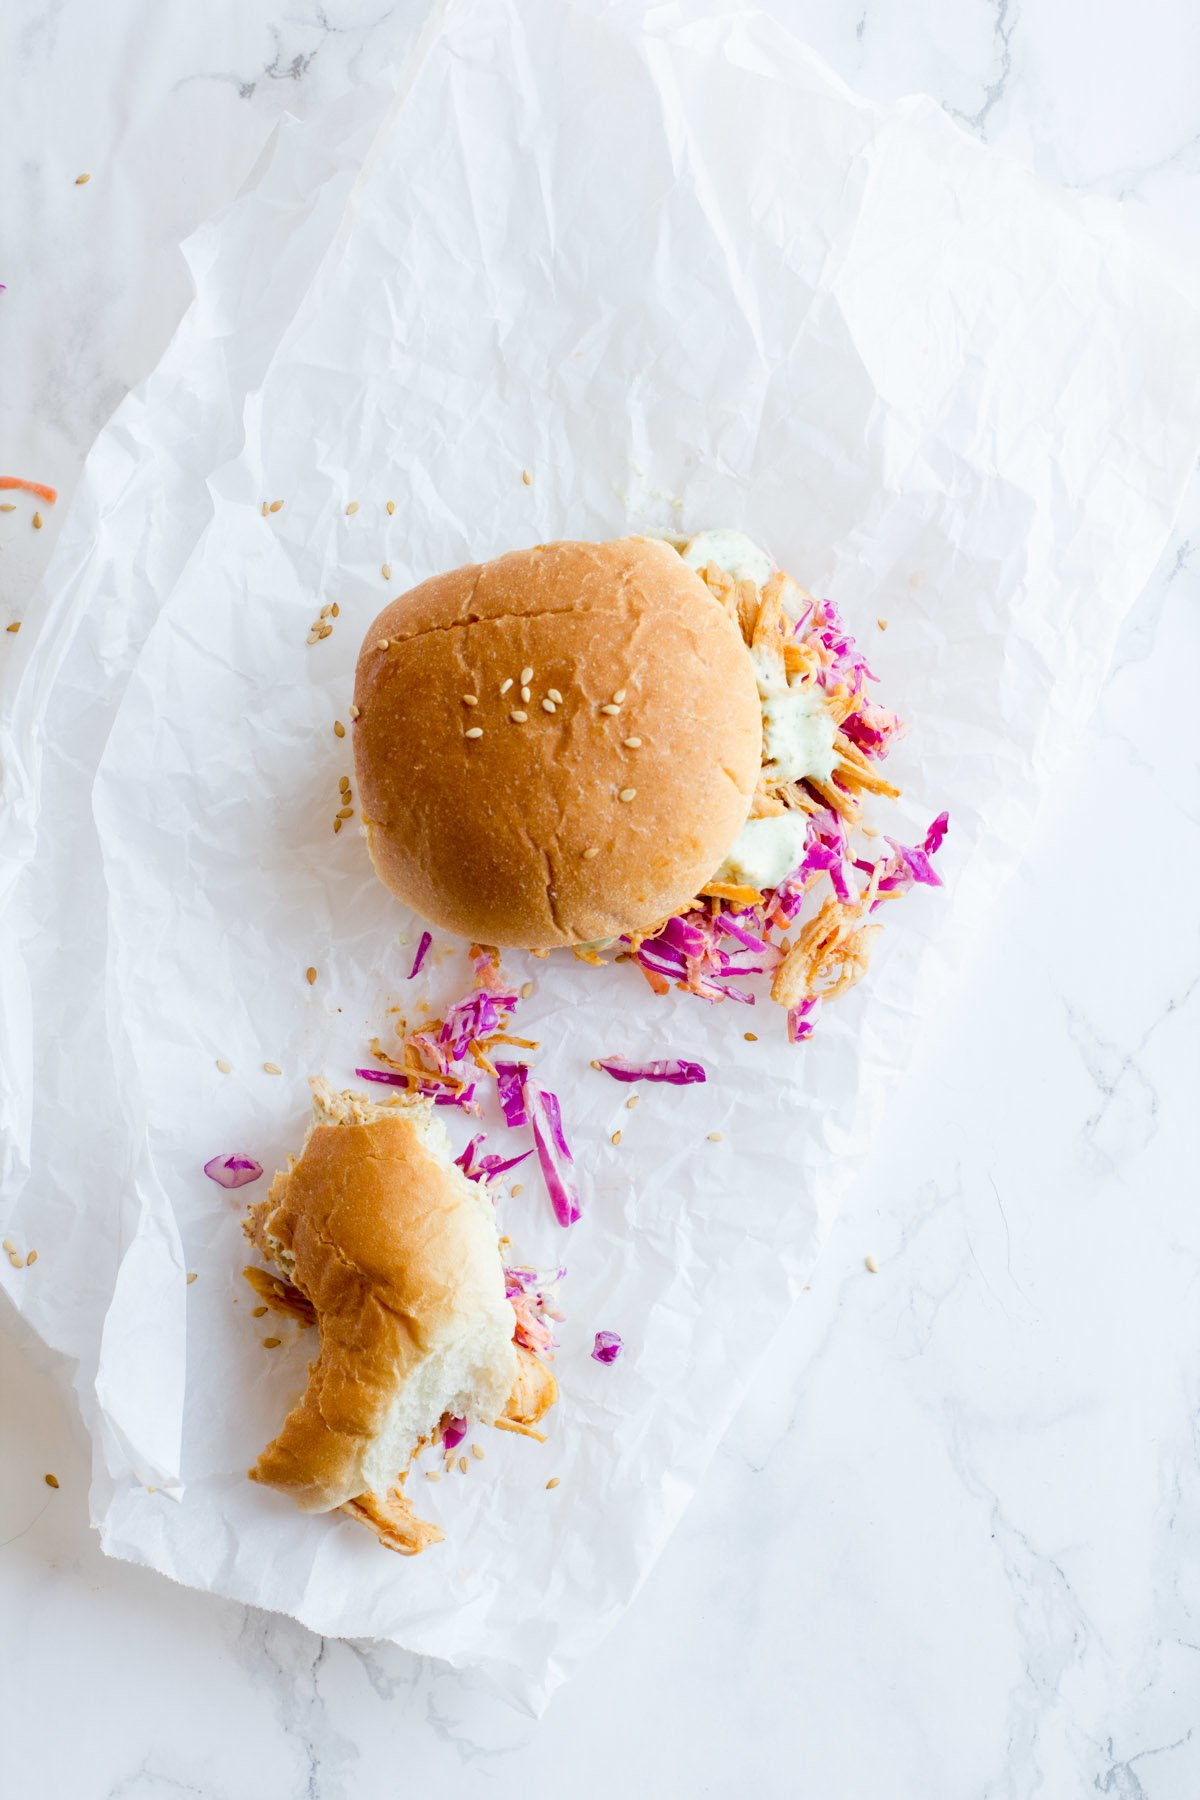 Overhead of two sliders on parchment paper, one of which is partially eaten.